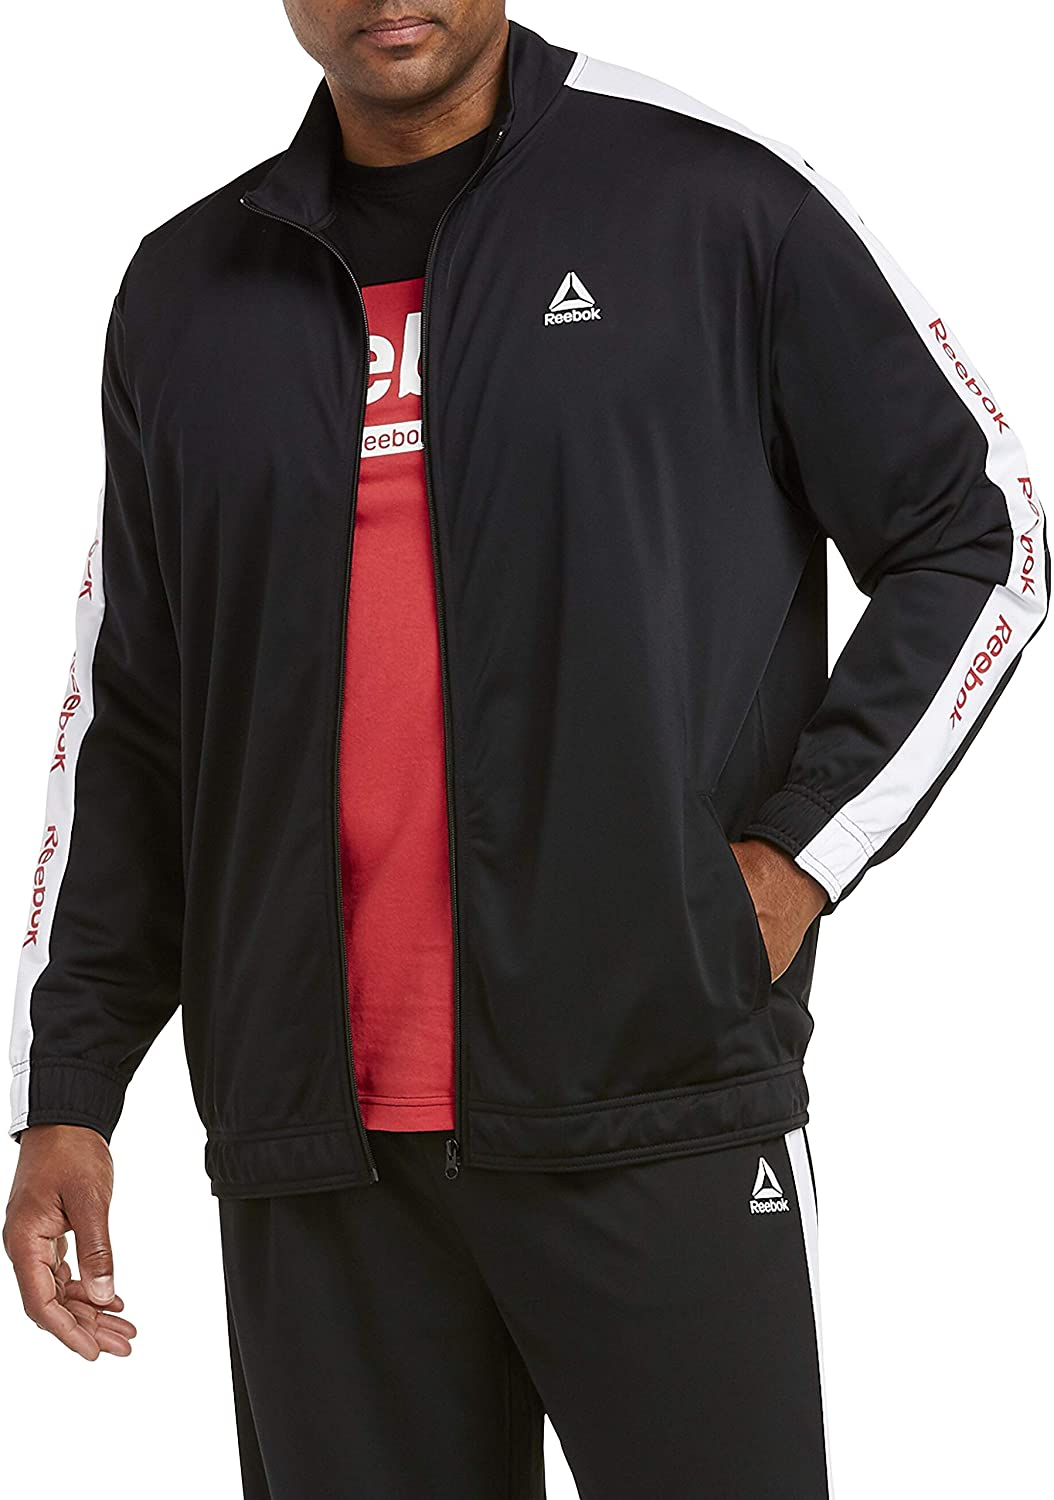 Reebok Big and Tall Taped-Sleeve Performance Track Jacket, Black, 2XL